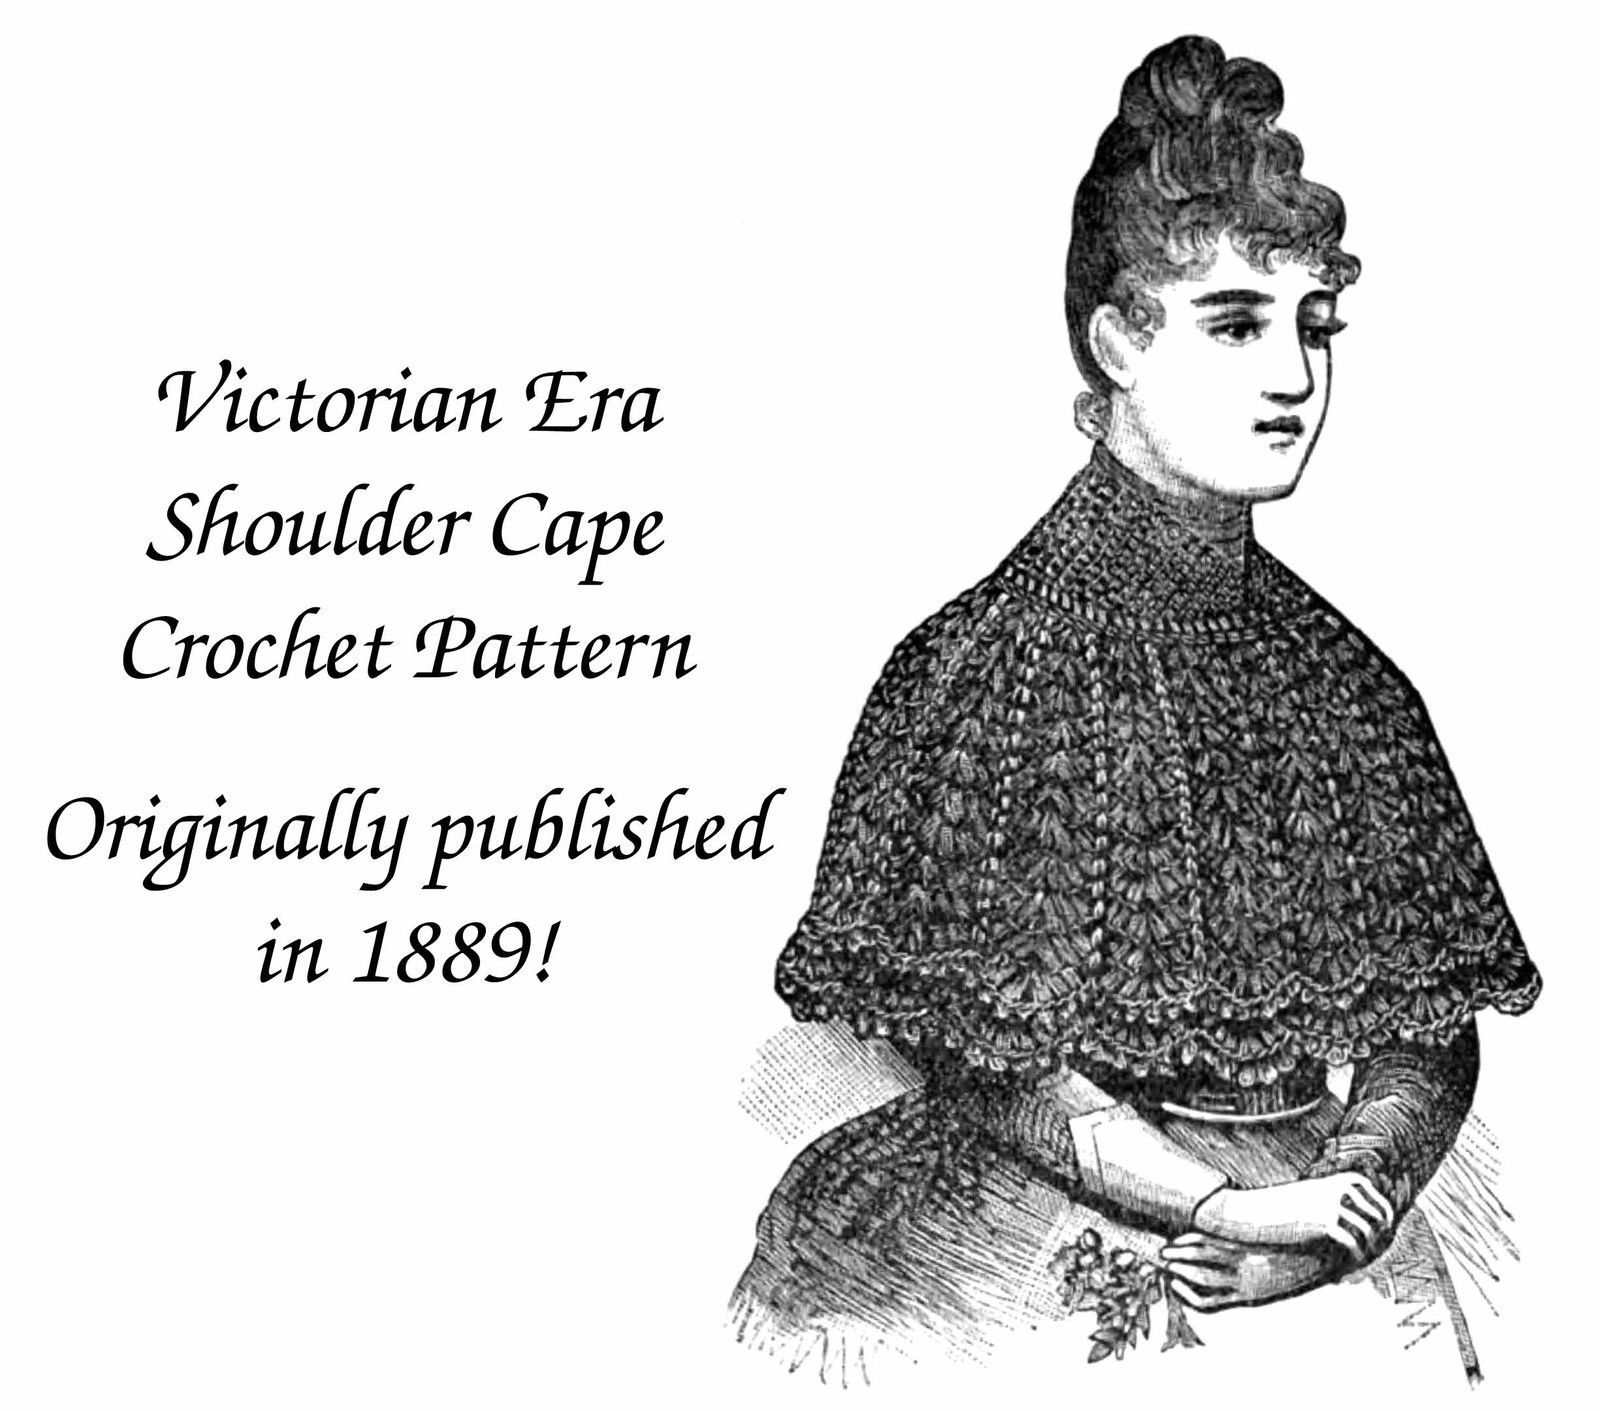 1889 Victorian Shoulder Cape Crochet Pattern Historical Village Crocheted Shawl